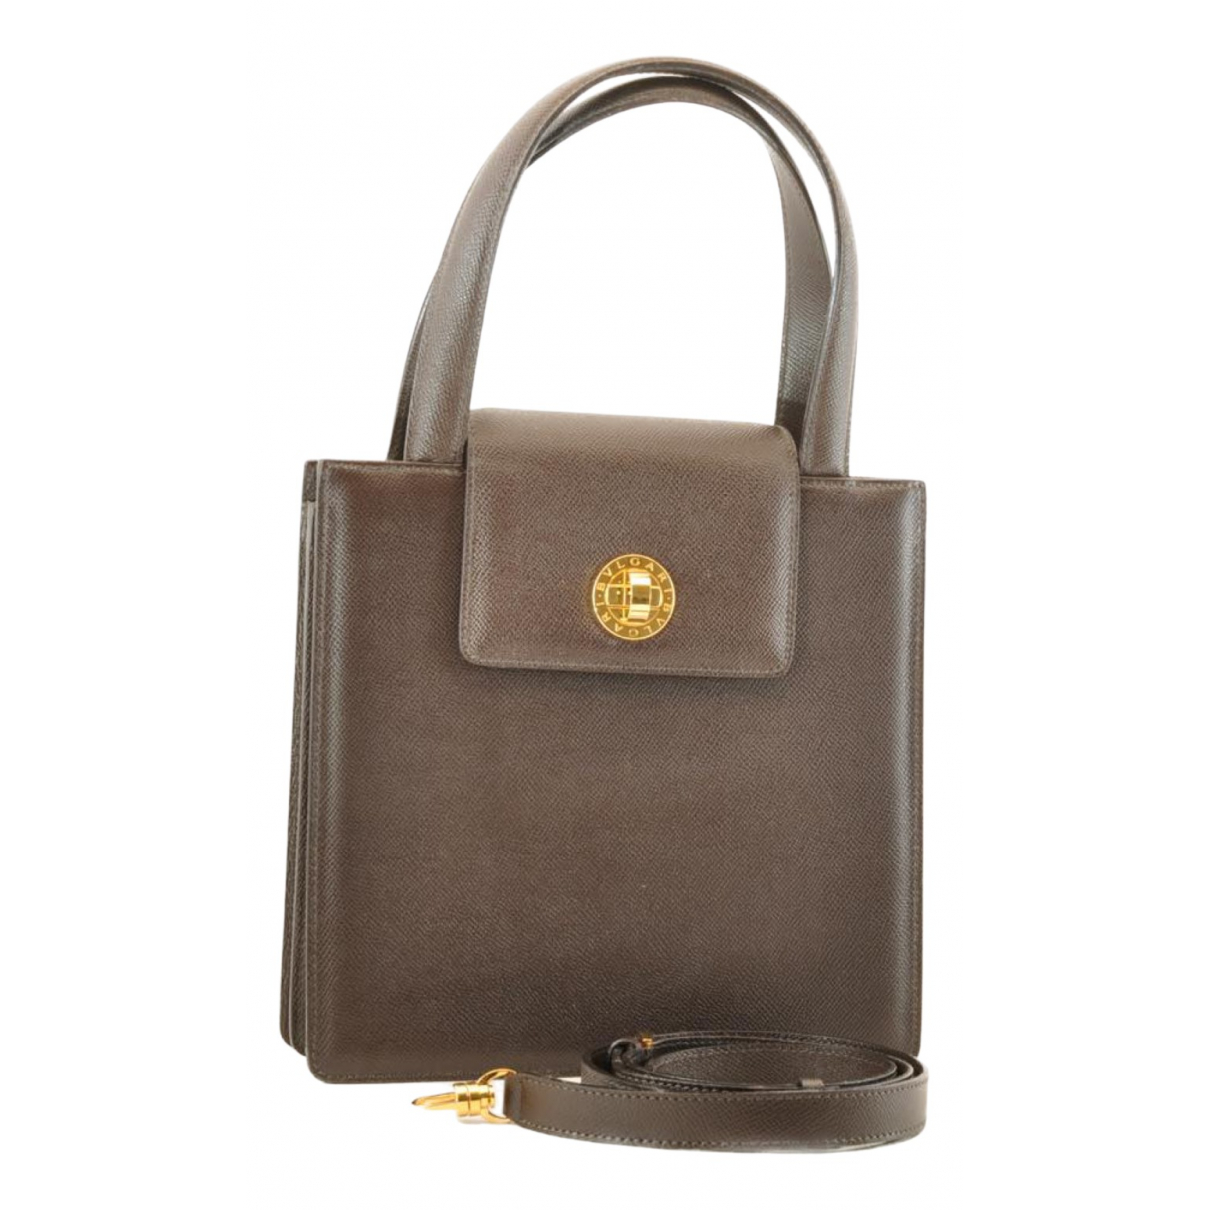 Bvlgari N Brown Leather handbag for Women N